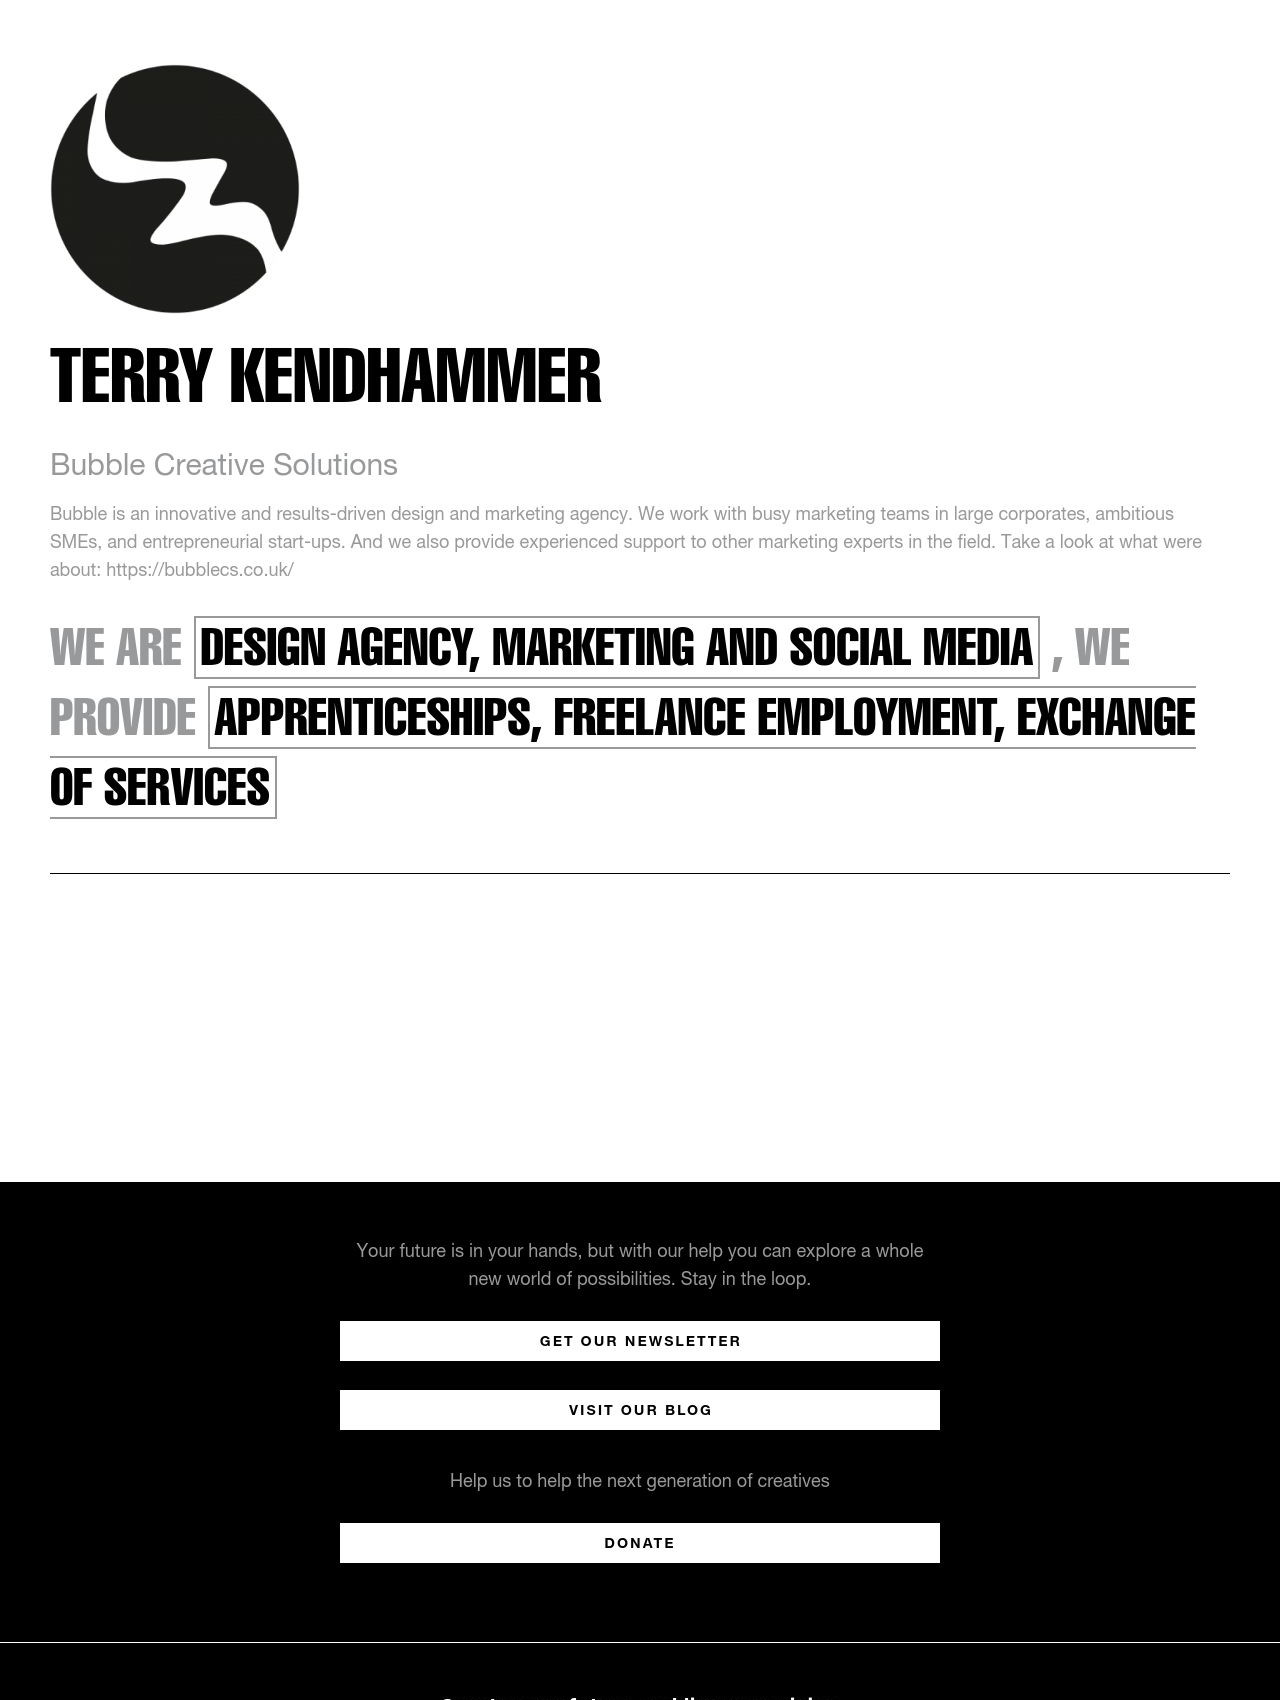 Terry Kendhammer